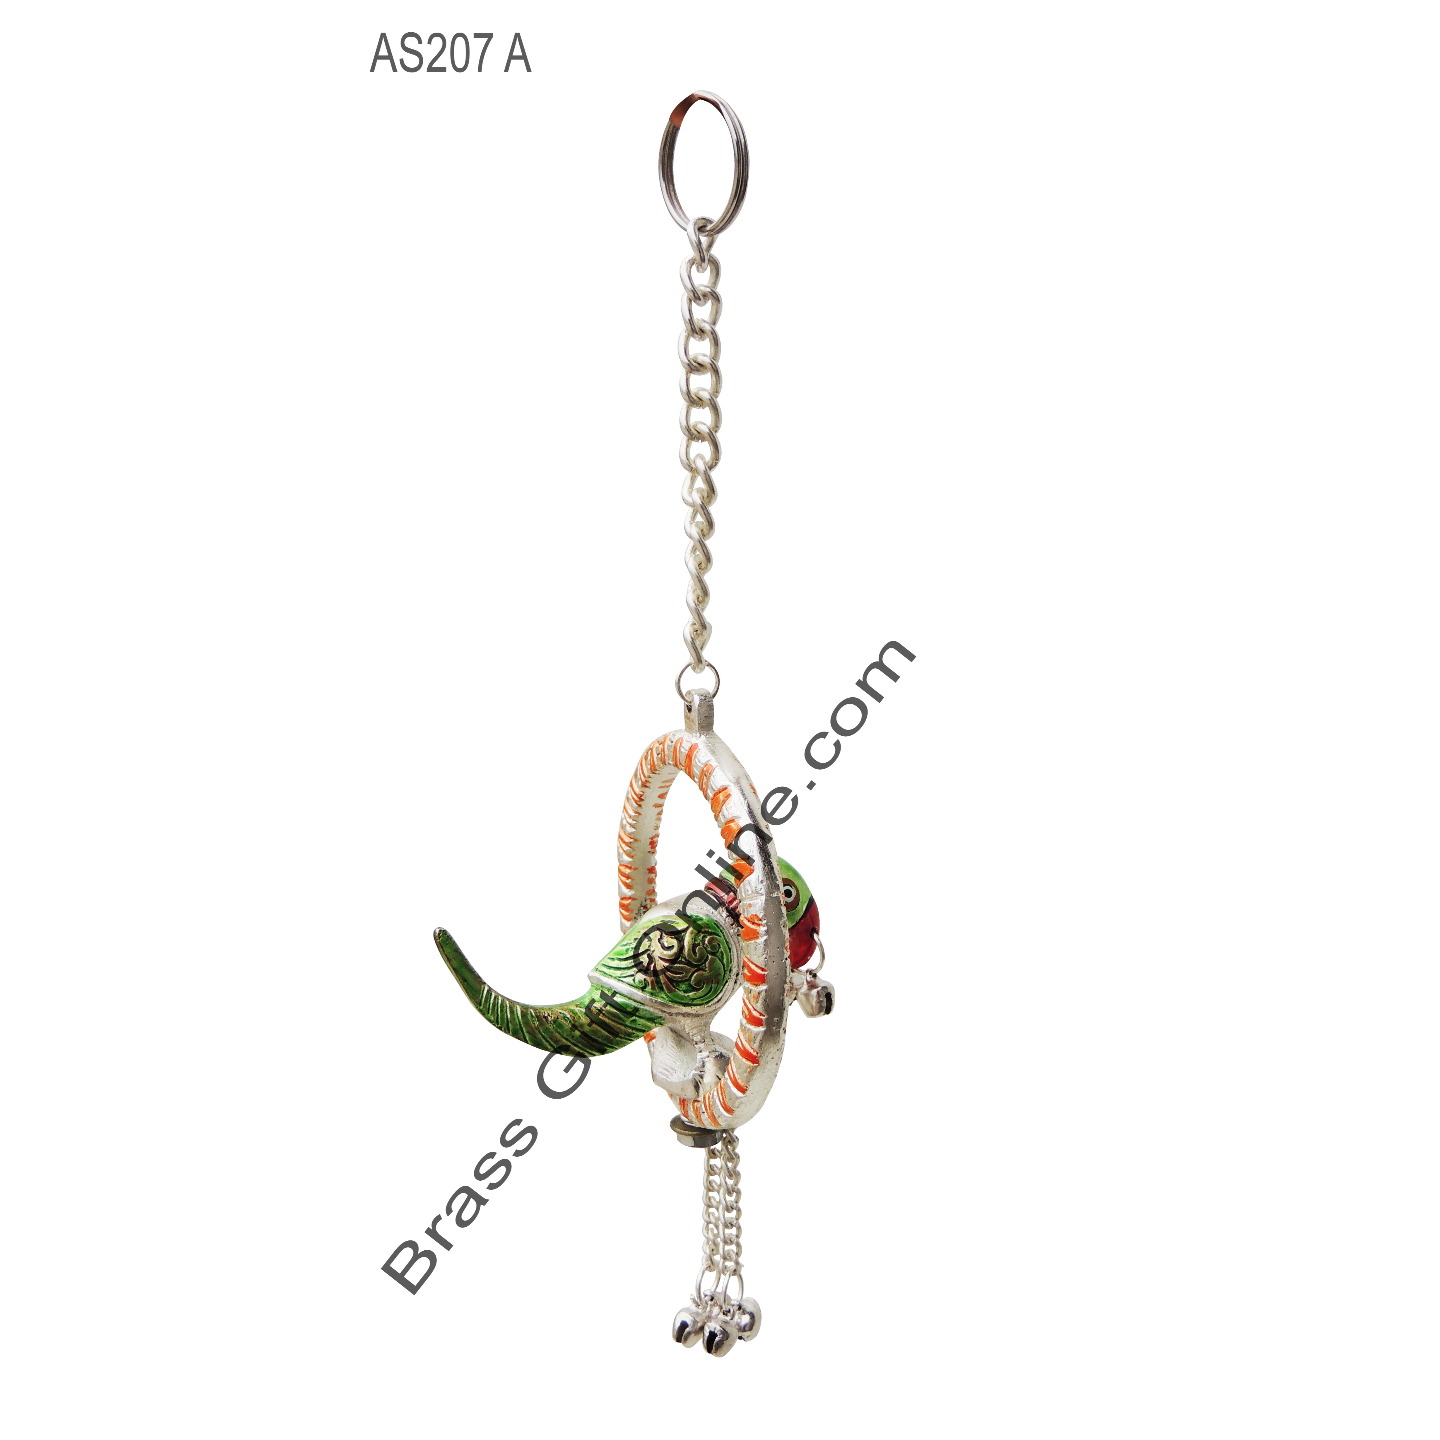 Hanging Parrot Small -3*3 Inch (AS207 A)